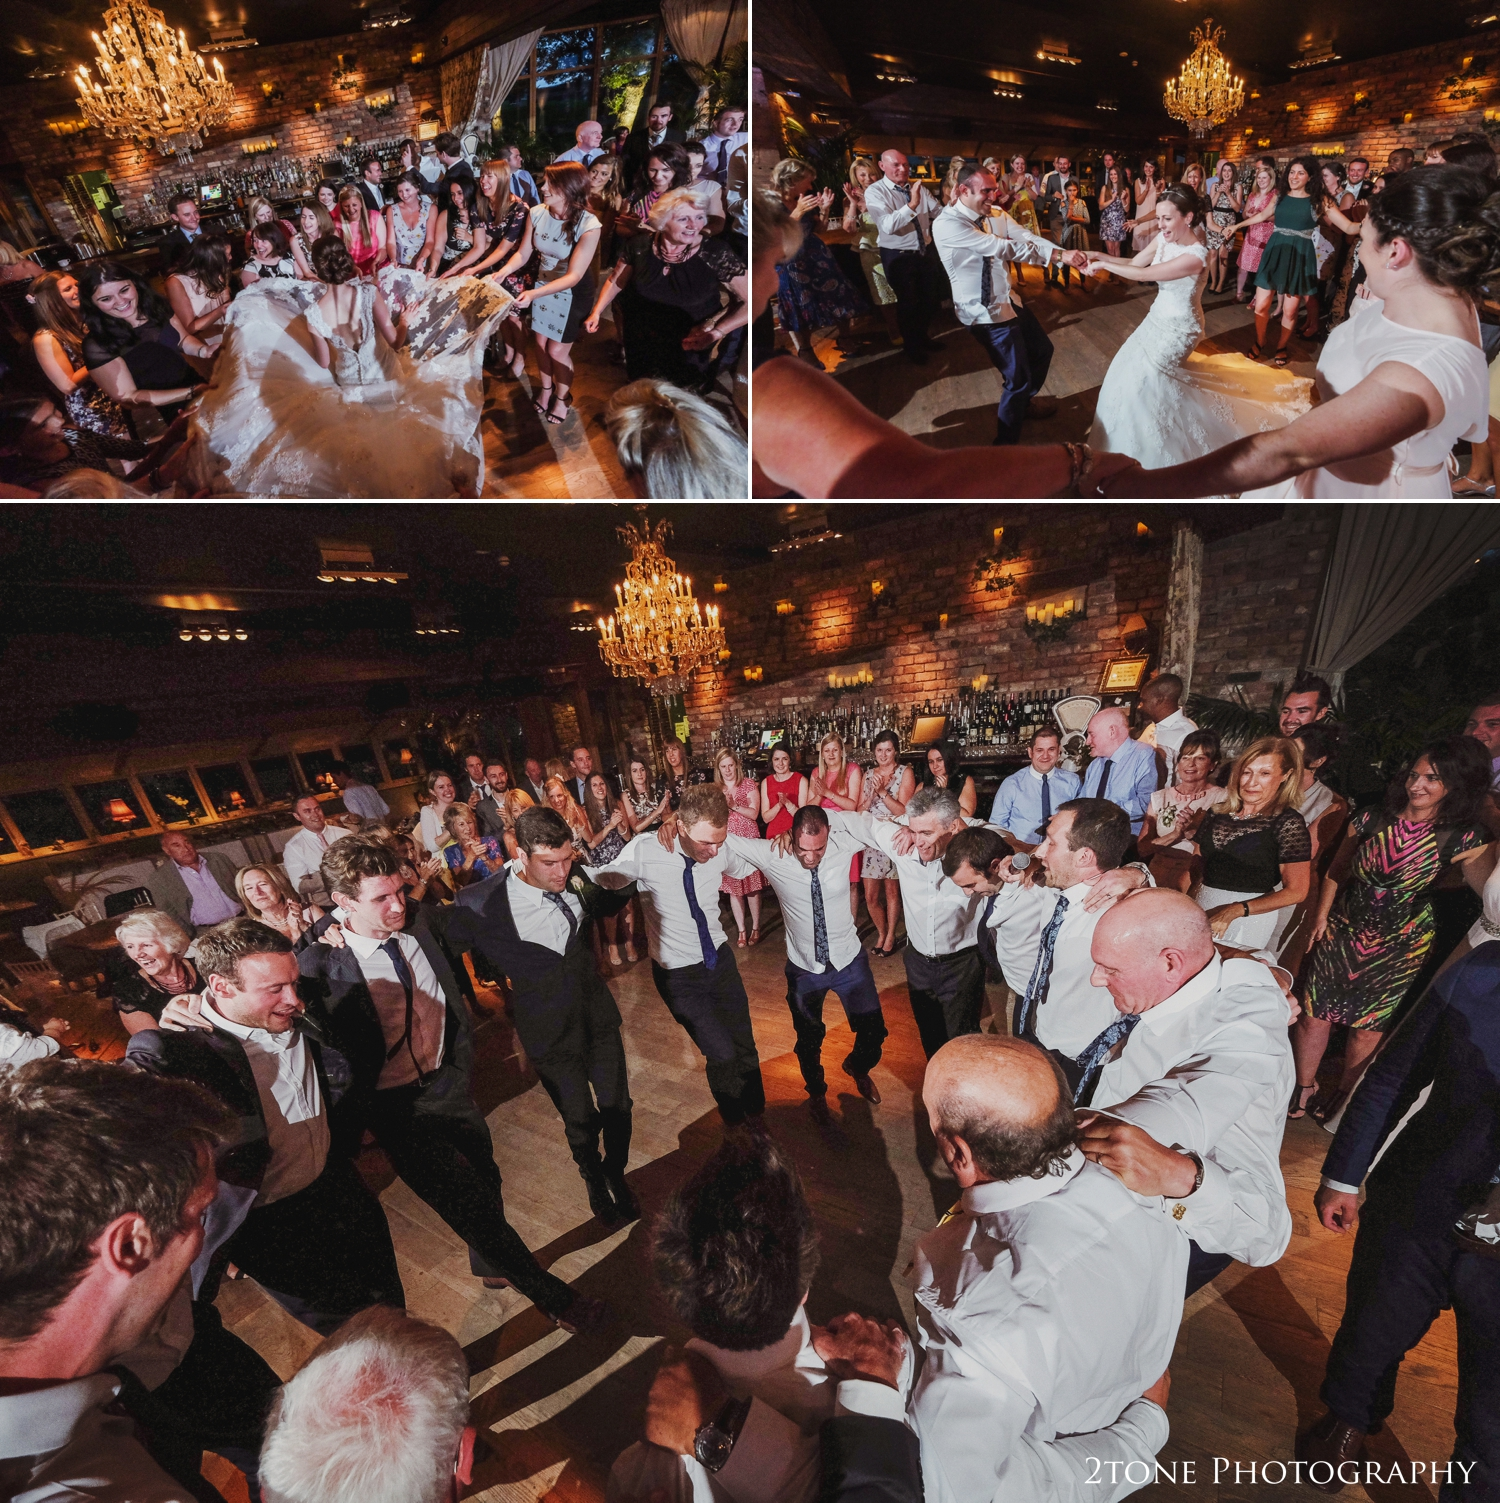 E  very single person in the room got involved in the dancing, everyone gave it 100% and everyone danced as if they were dancing at their own wedding.